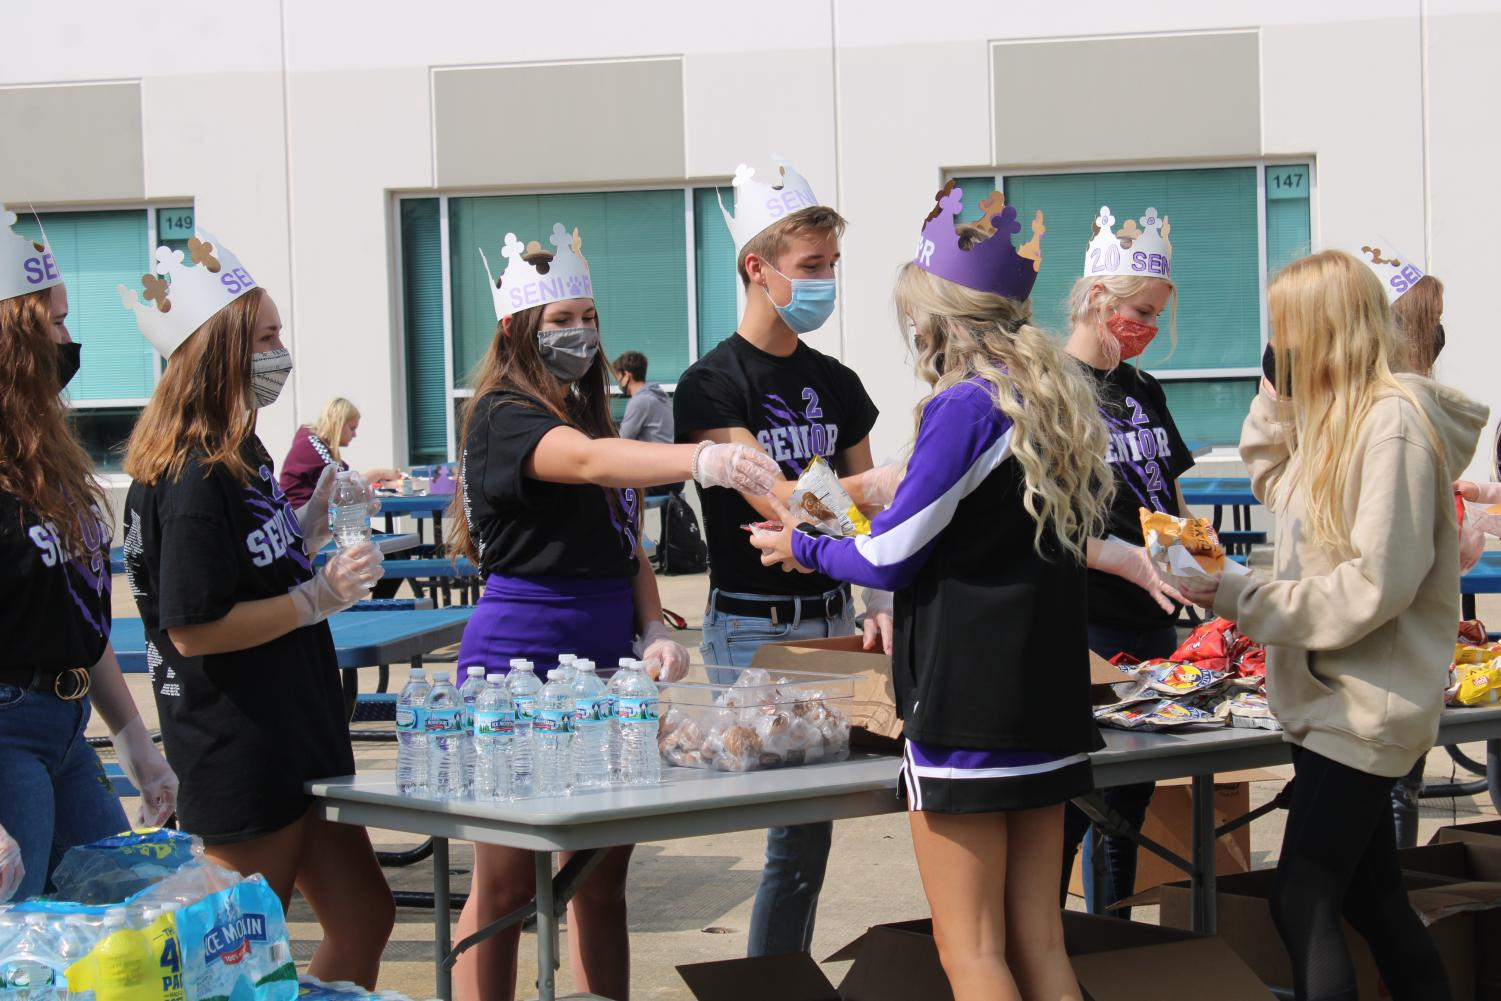 Senior Class Officers handing out the food